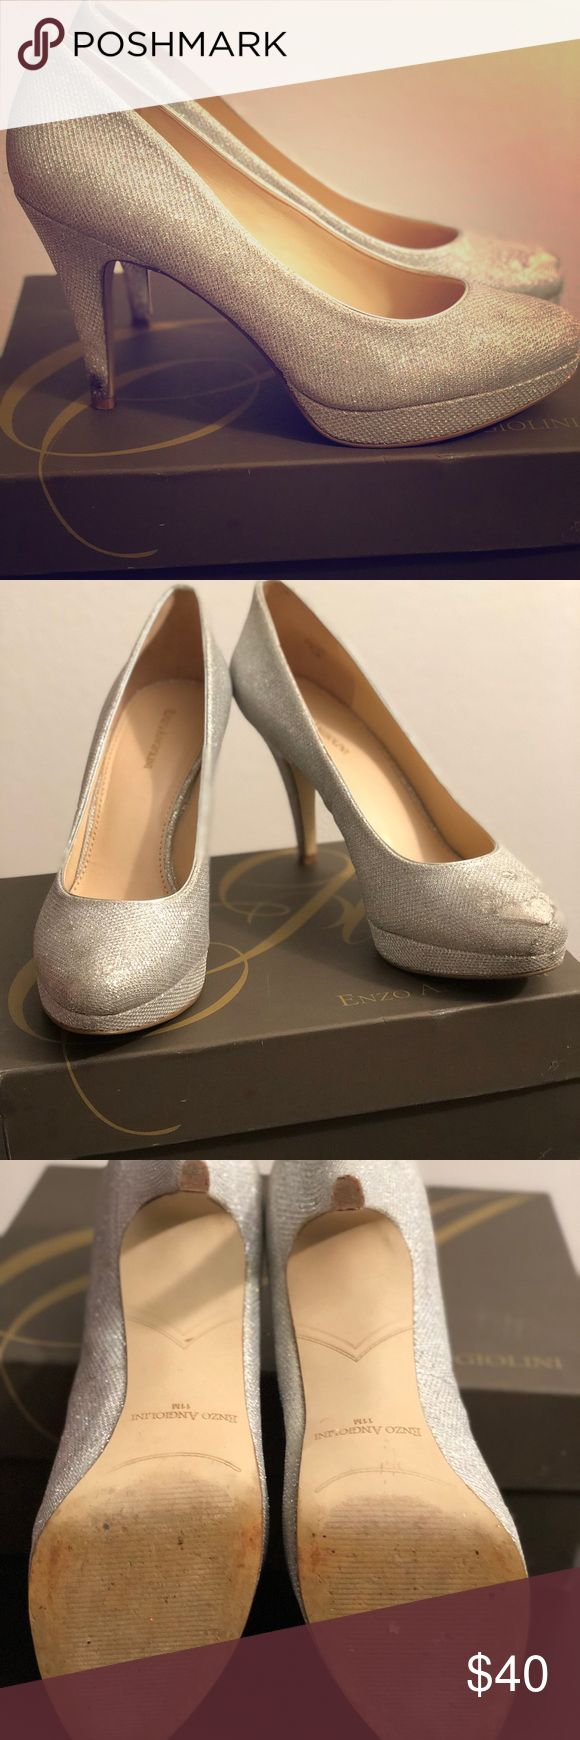 Enzo Angiolini Silver Sparkly Cinderella Heels Beautiful silver sparkly heels; comes with new box  Only worn twice. Has scuff on front of one shoe In great condition Enzo Angiolini Shoes Heels